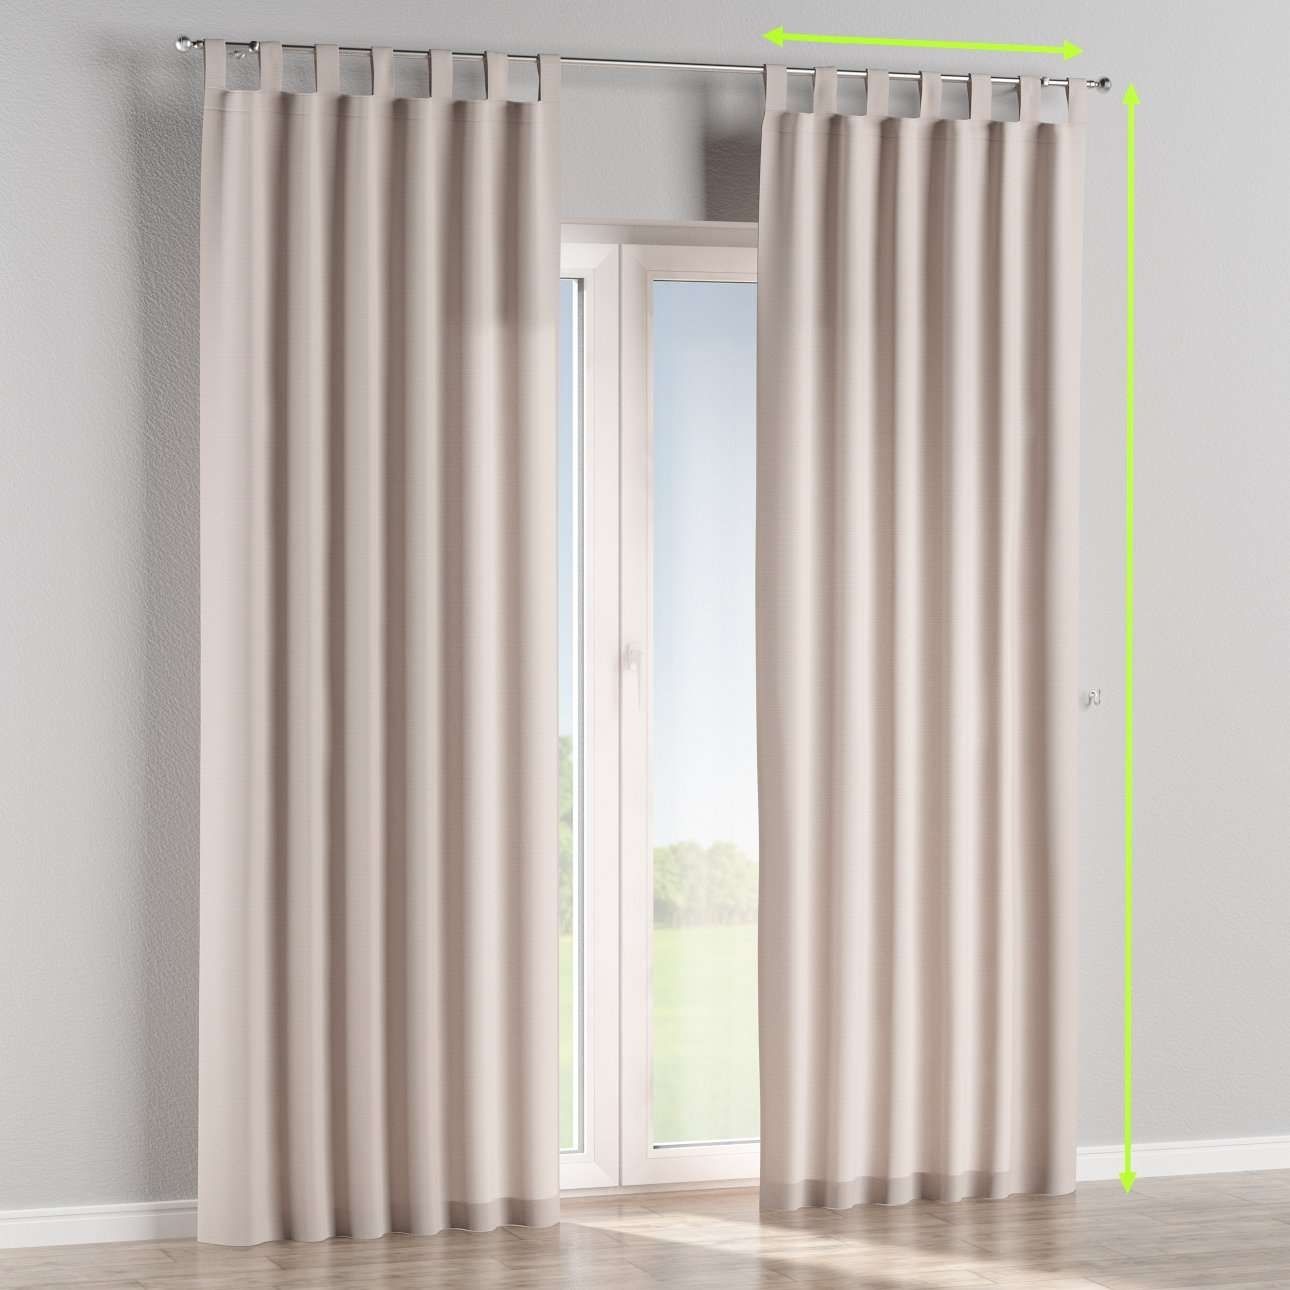 Tab top lined curtains in collection Cotton Panama, fabric: 702-31